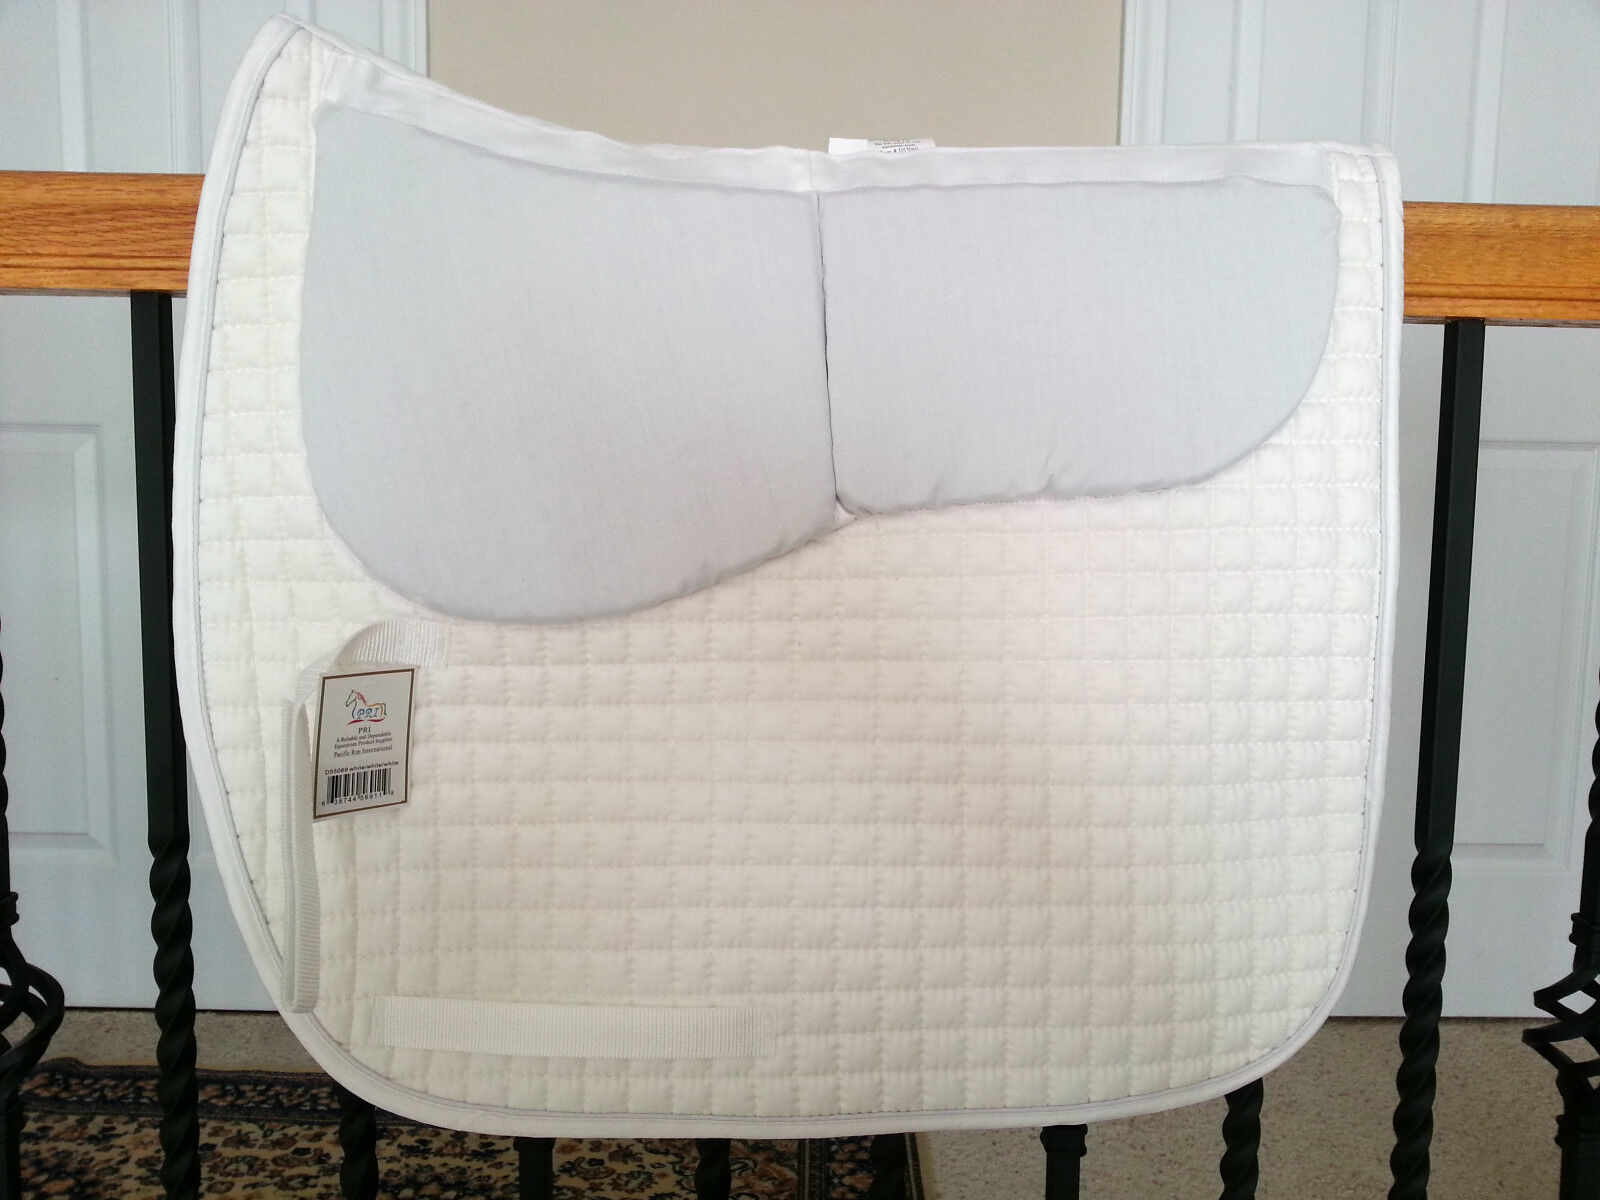 PRI PACIFIC RIM Nytro-Gel Inserts  Dressage Saddle Pad  (3 COLORS)  affordable